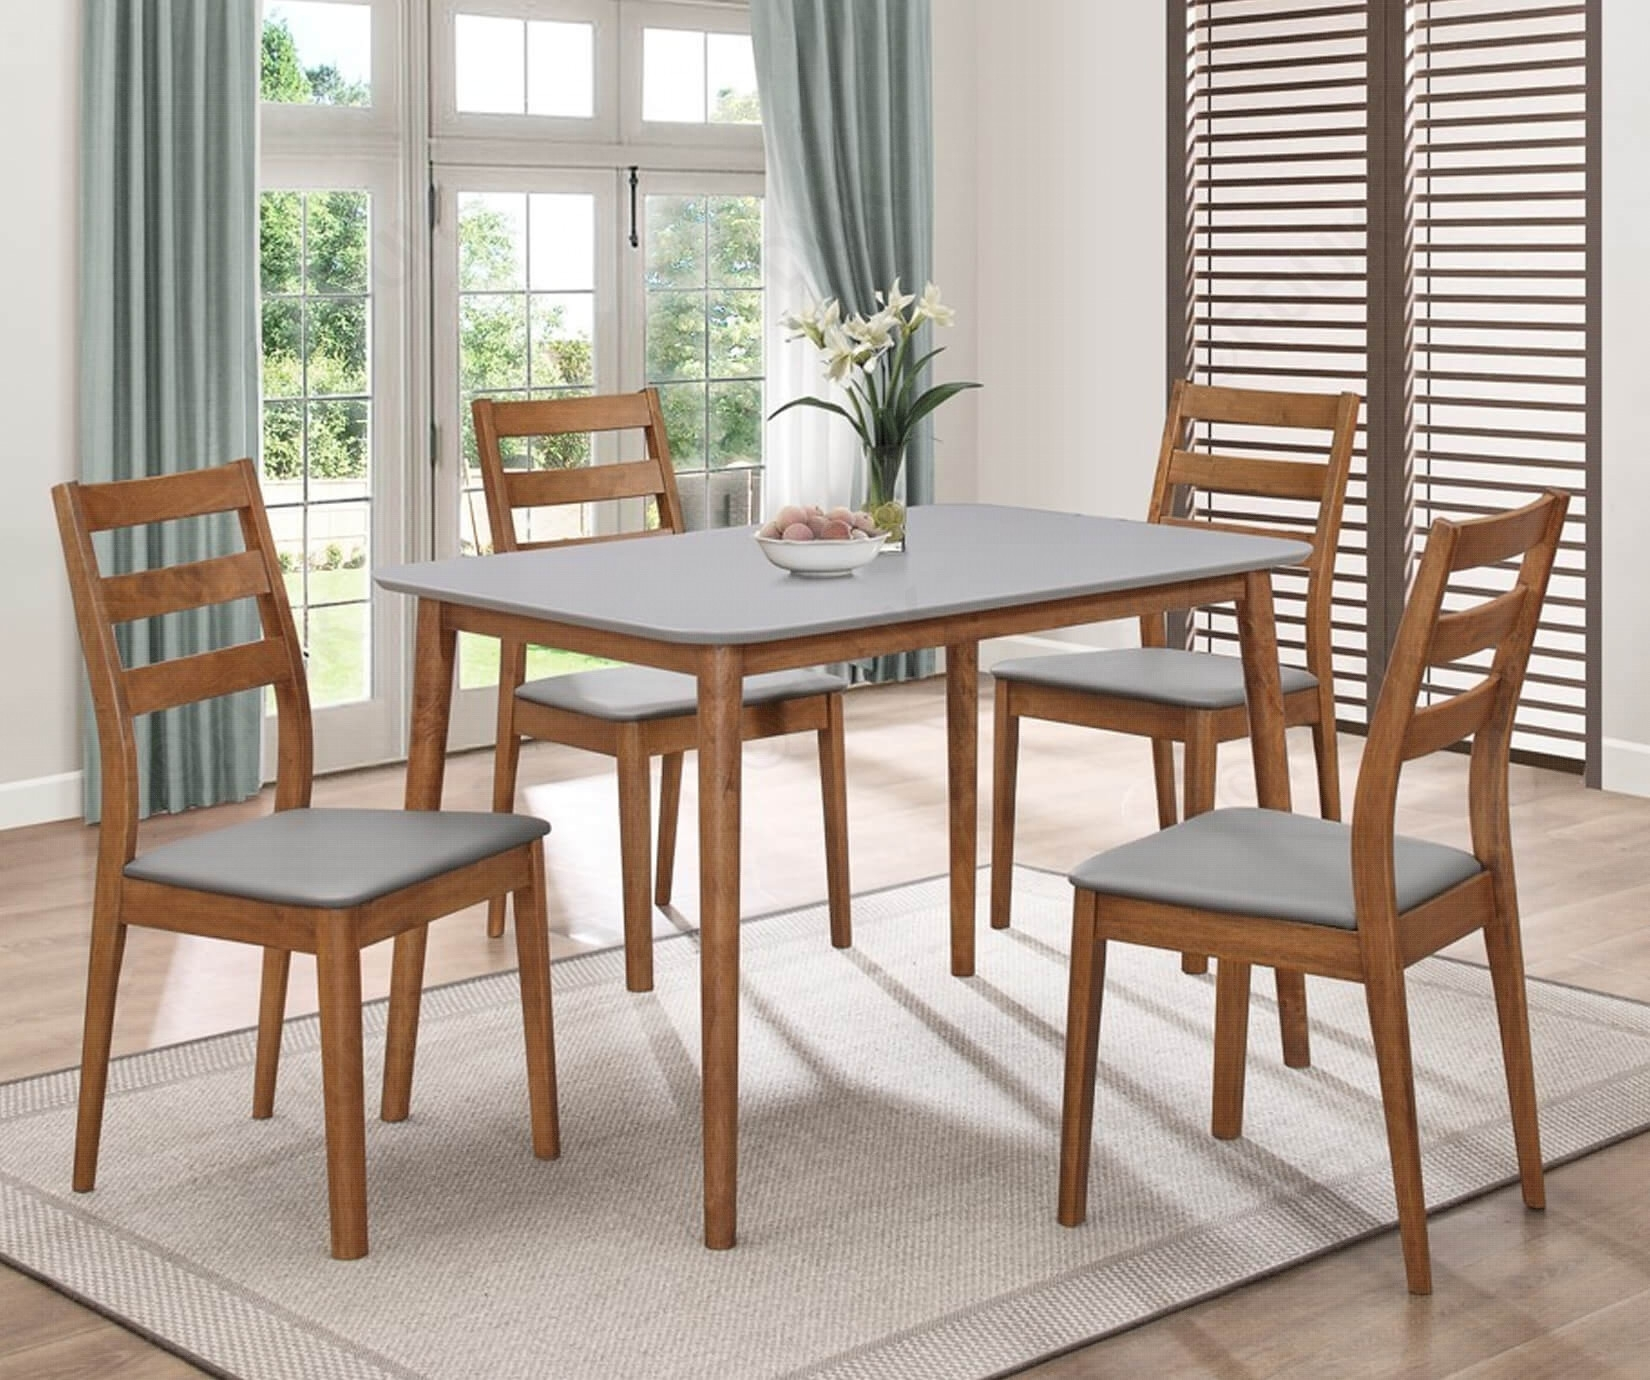 Annaghmore | Cora Dining Table | Furnituredirectuk Regarding Most Up To Date Cora Dining Tables (View 4 of 20)